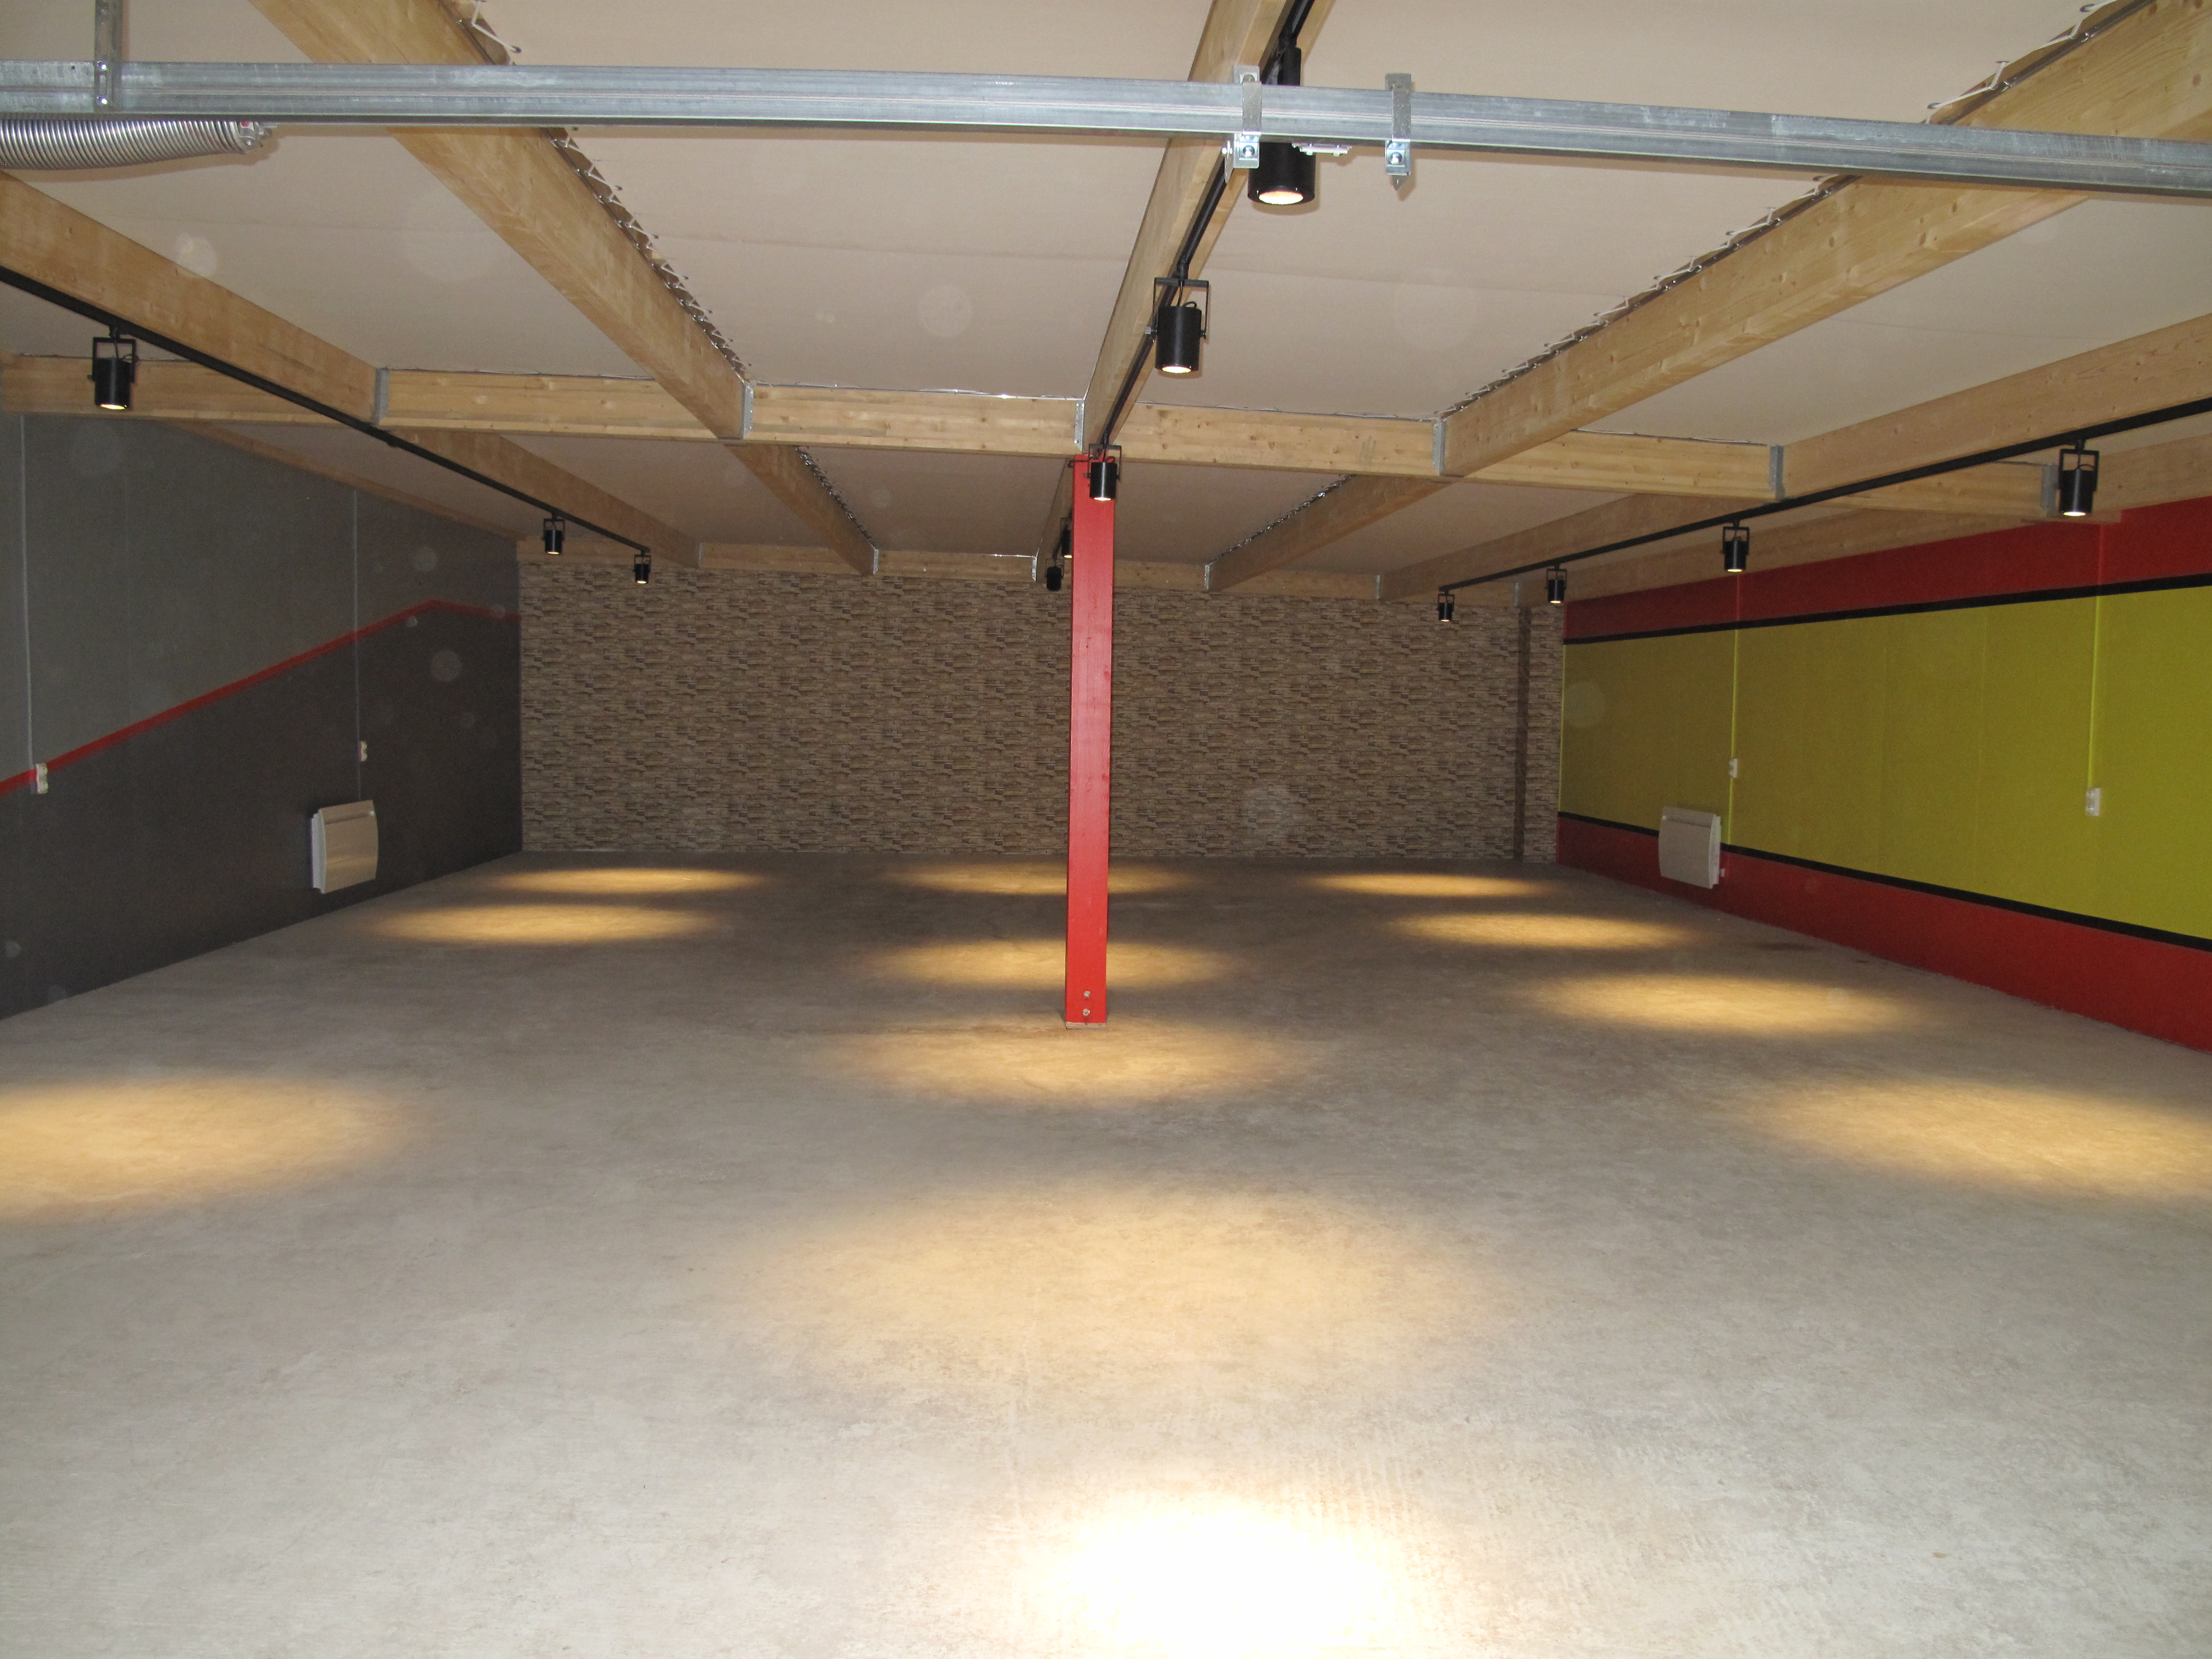 garage 12 places avant pose dalles Polydal